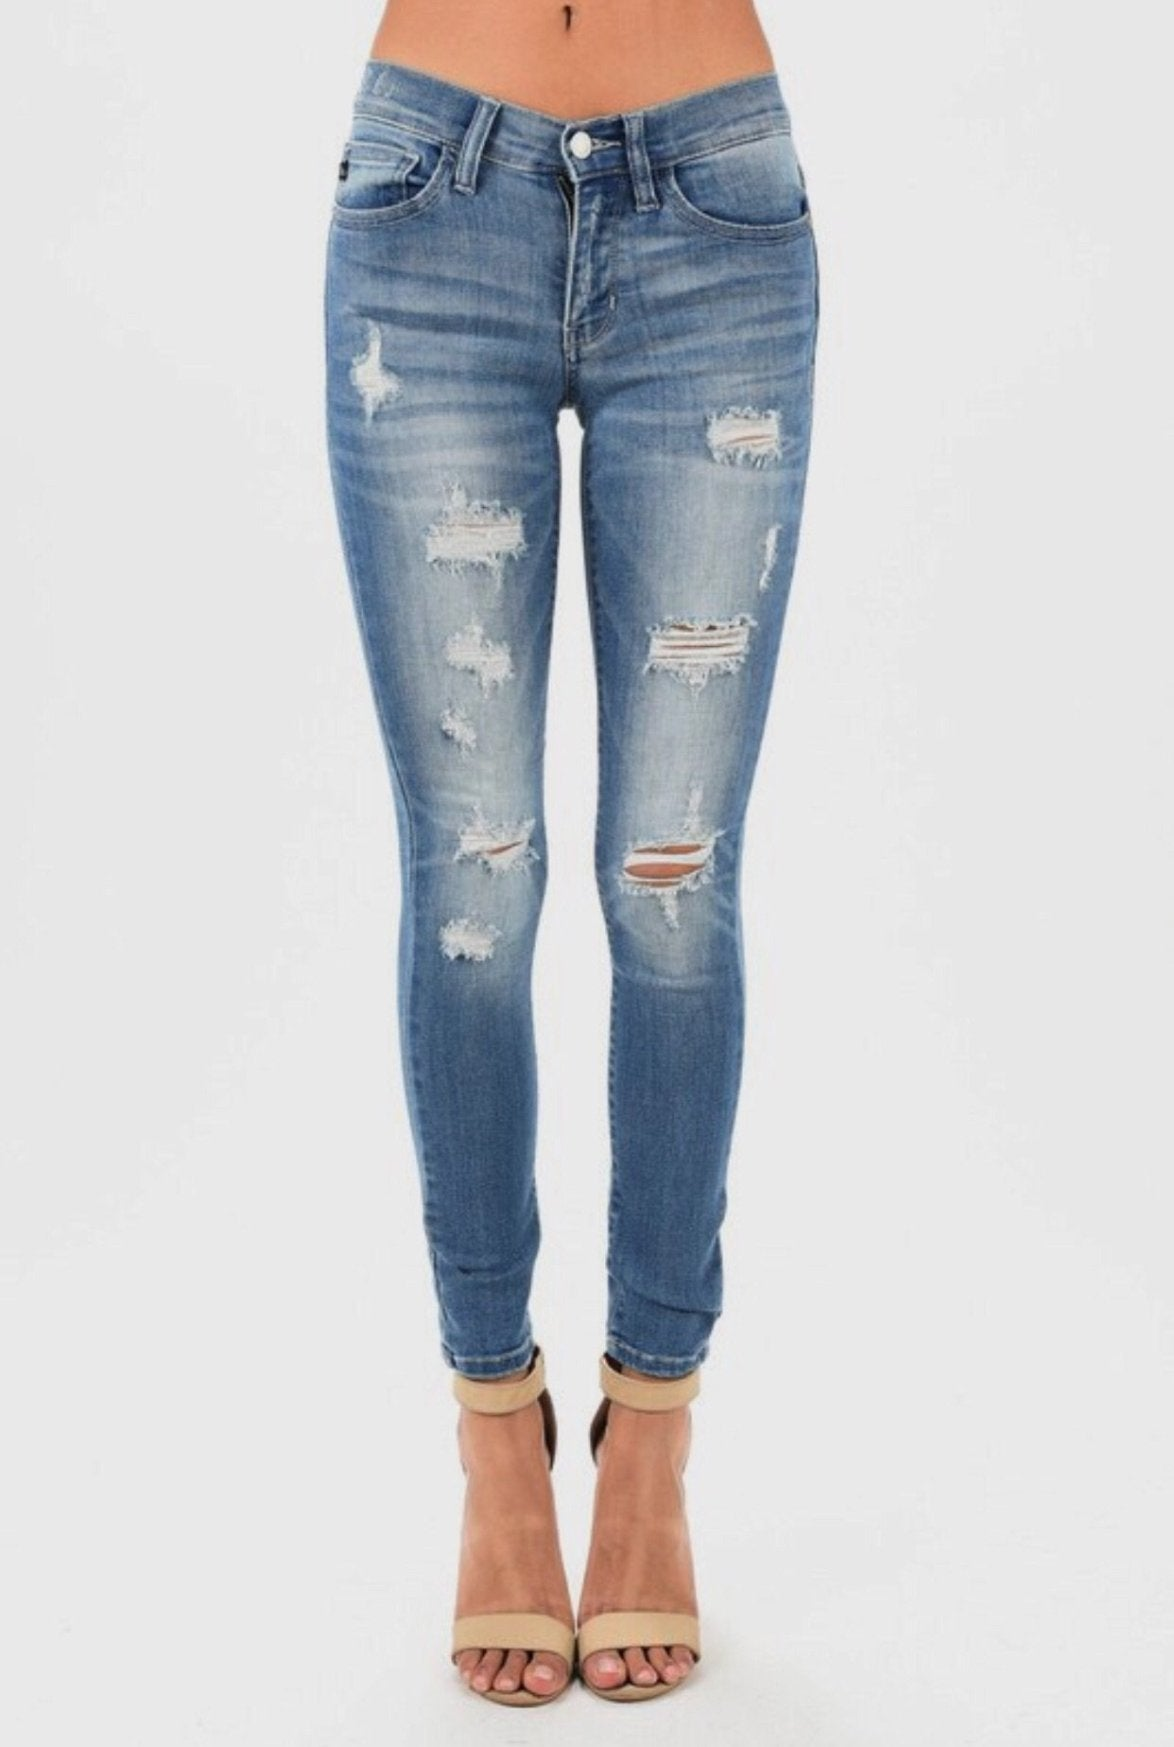 MEDIUM WASH DESTROYED SKINNY DENIM - Judy Blue